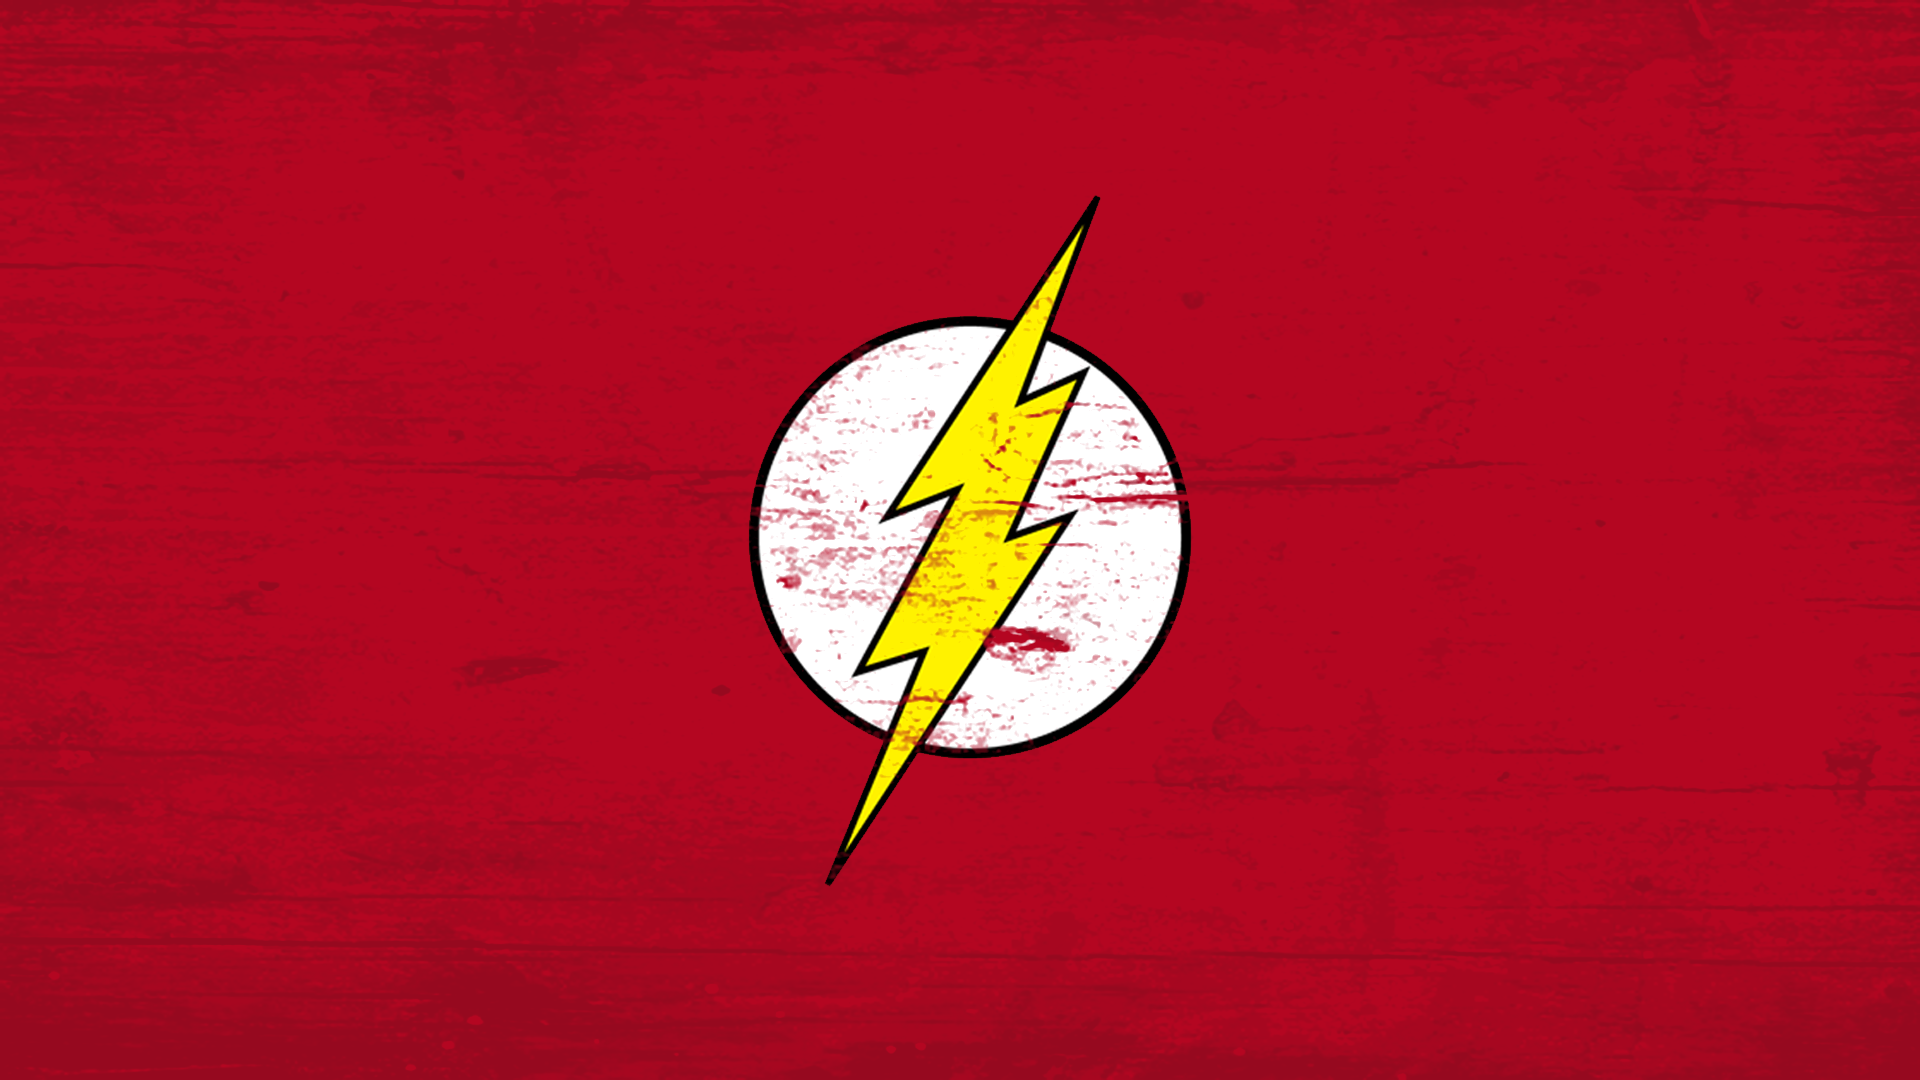 Go Back Gallery For The Flash Symbol Wallpaper 1920x1080